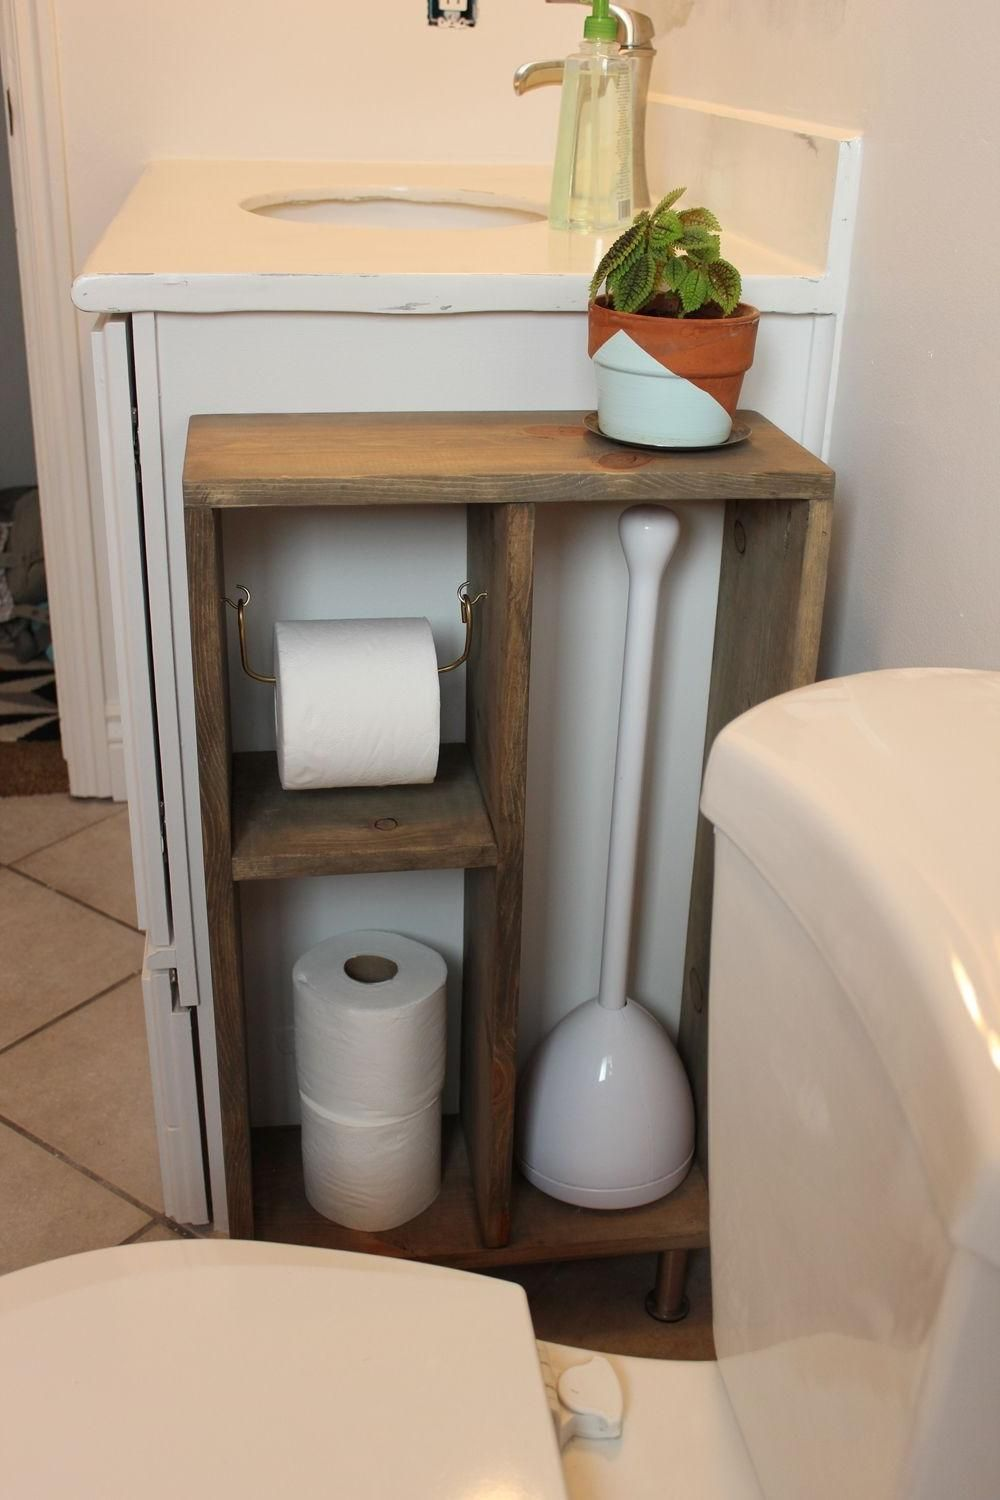 50 Best Diy Toilet Paper Holder Ideas And Designs You Ll Love Interiorsherpa Diy Toilet Paper Holder Wood Toilet Paper Holder Toilet Paper Storage